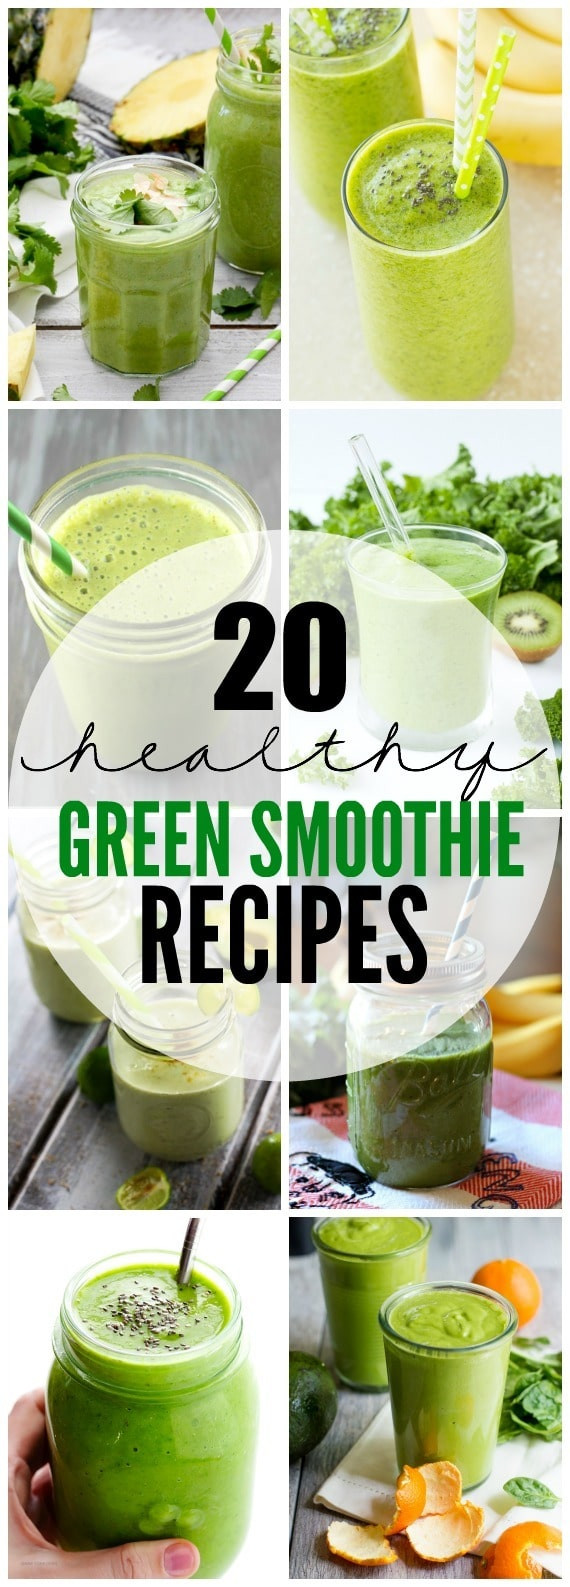 Are Green Smoothies Healthy  20 Healthy Green Smoothie Recipes Yummy Healthy Easy